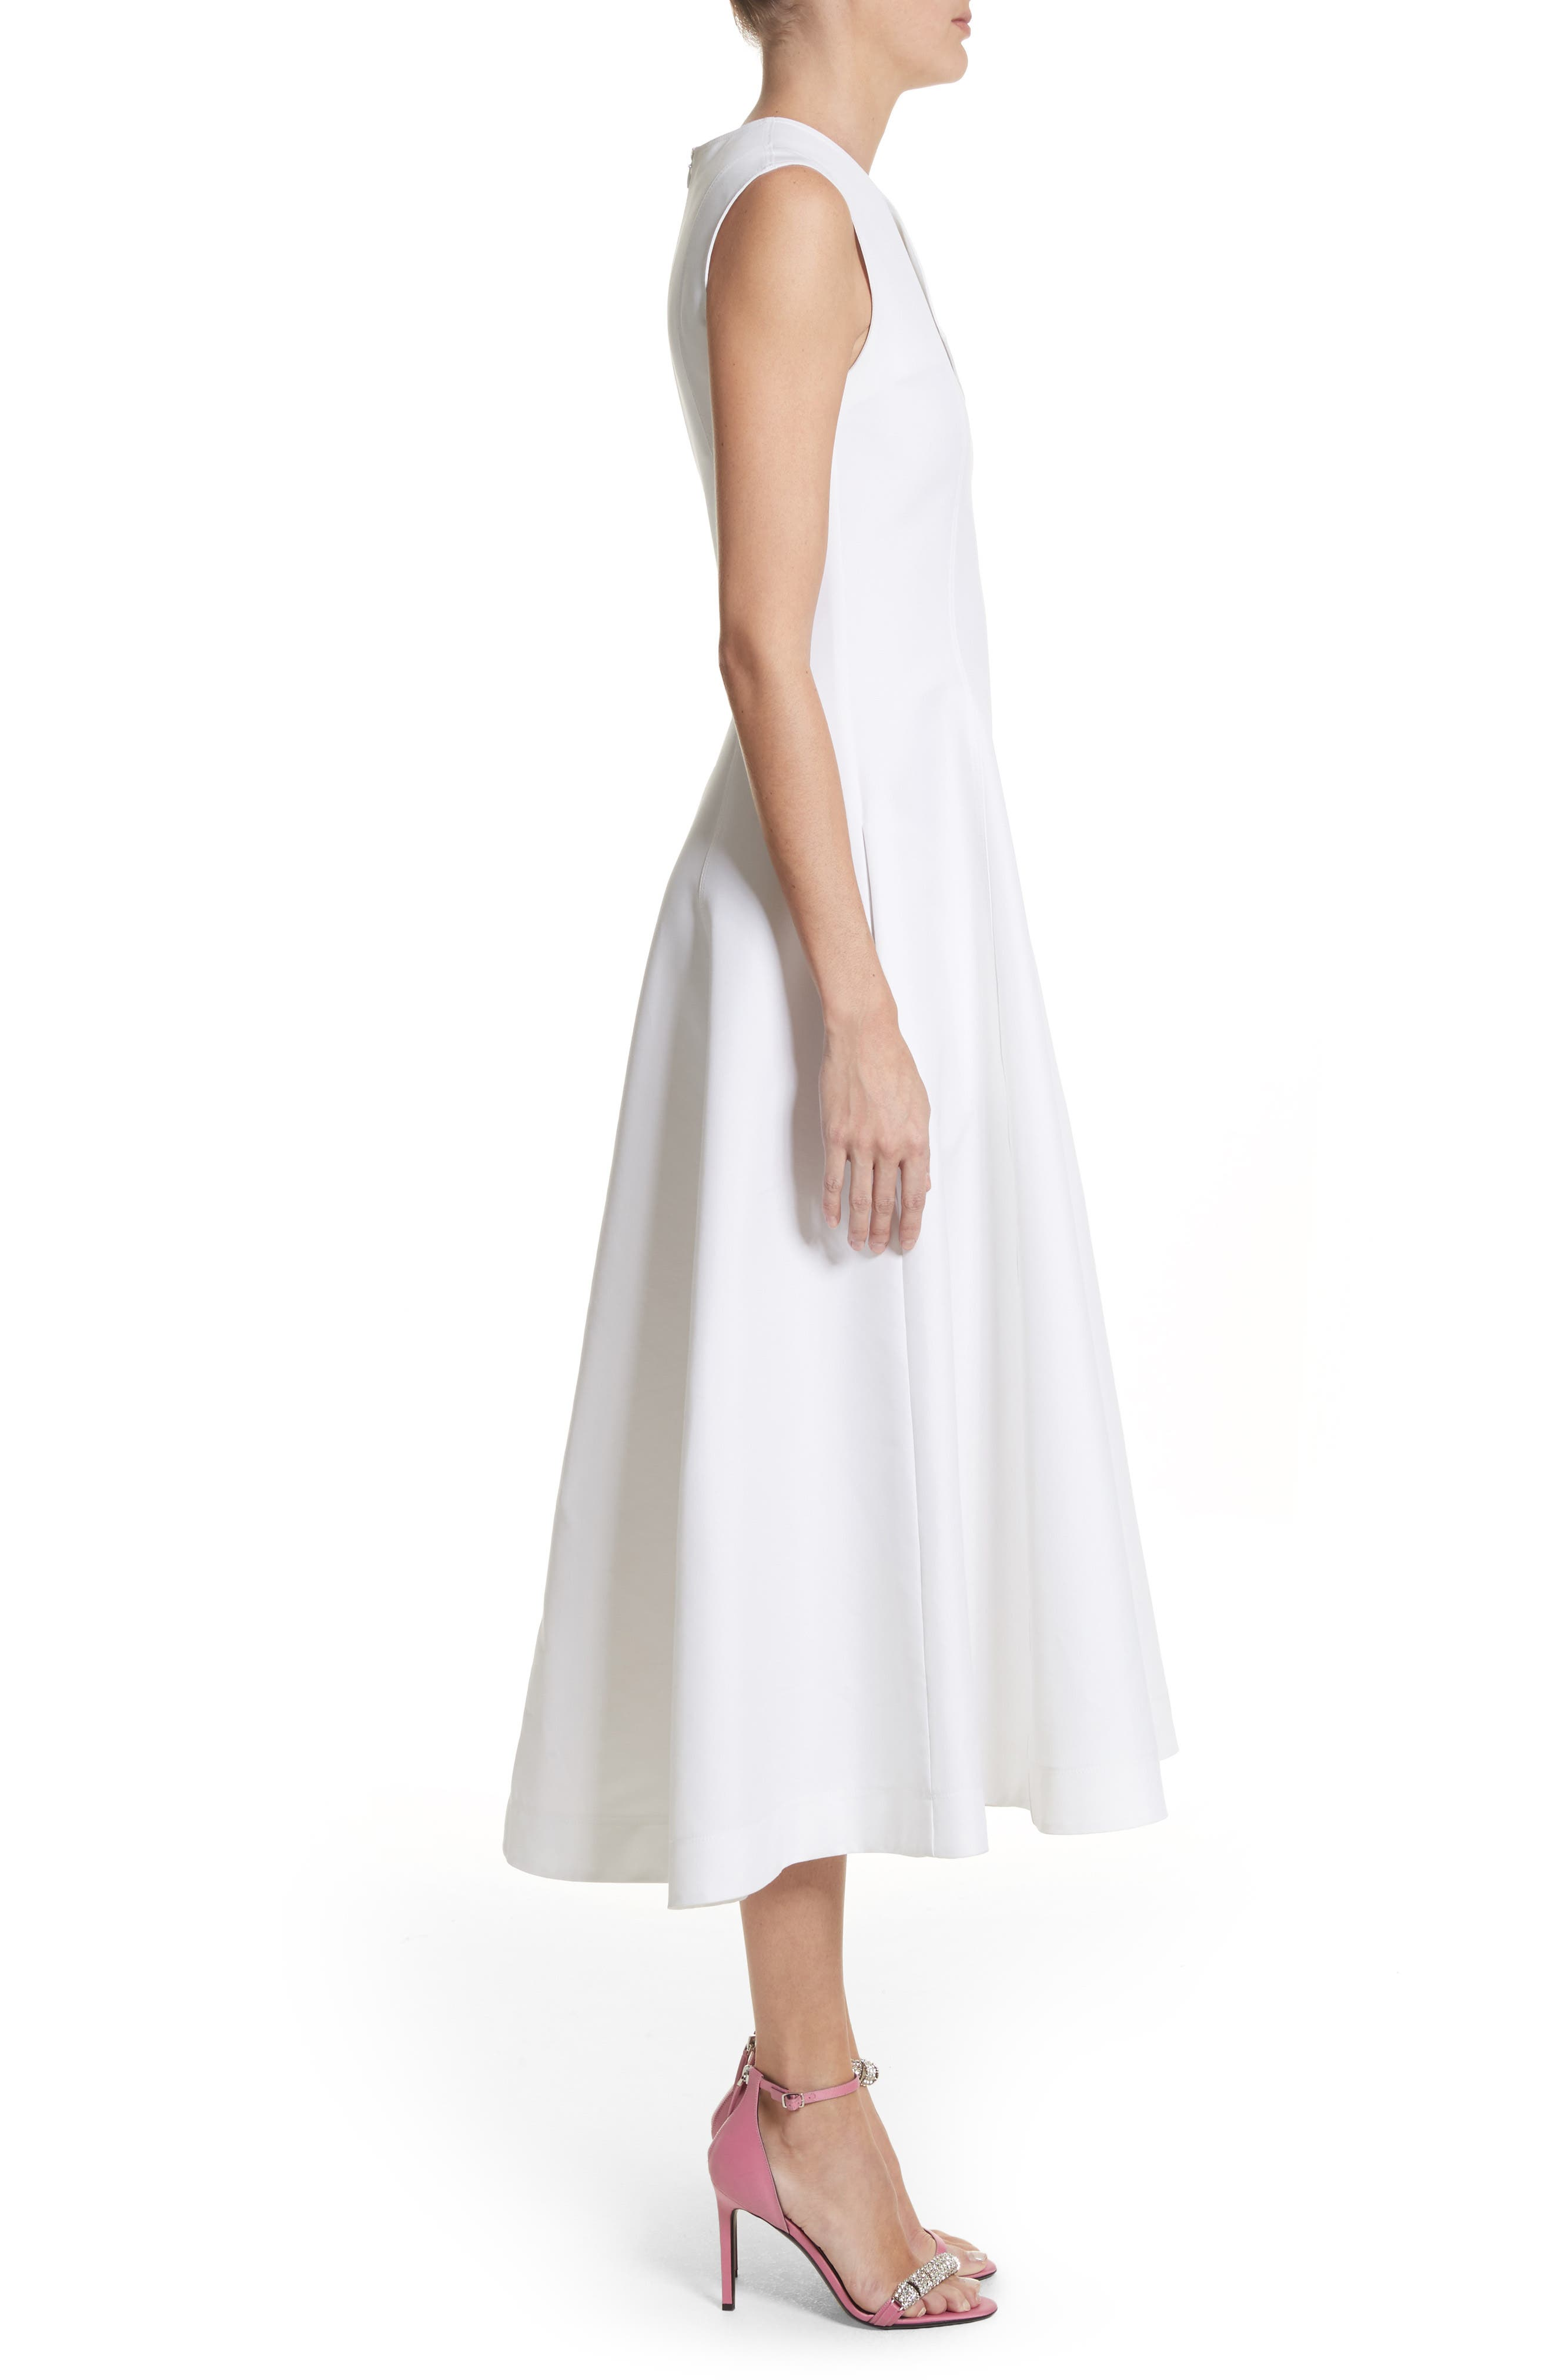 CALVIN KLEIN 205W39NYC, Flap Detail A-Line Dress, Alternate thumbnail 3, color, OPTIC WHITE